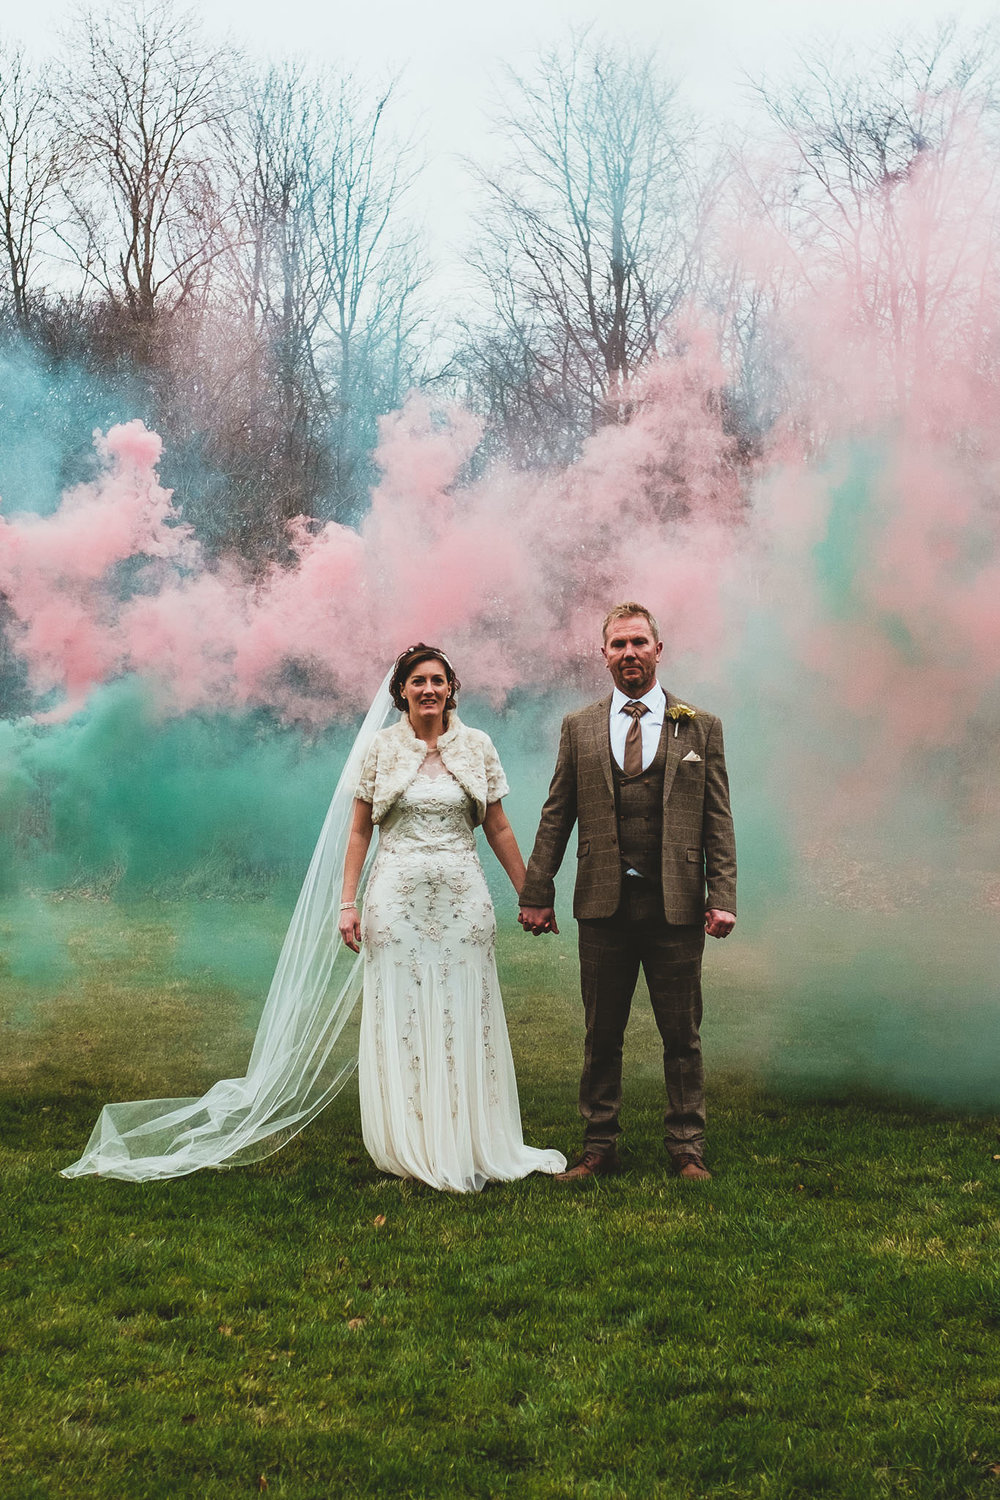 Portrait photo of the bride and groom holding hands while coloured smoke drifts behind